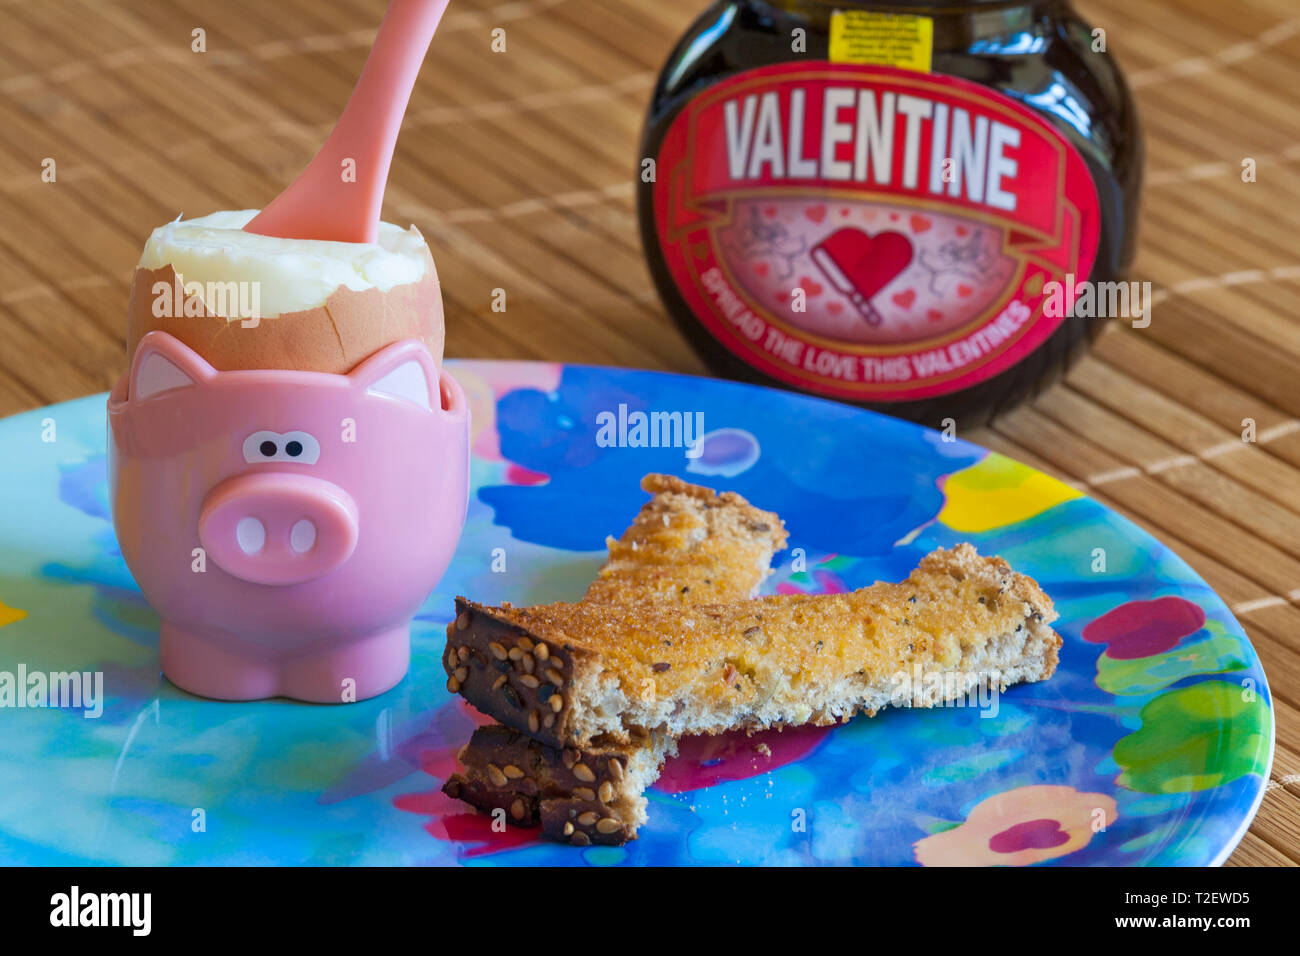 Boiled egg in egg cup with soldiers toast and jar Special edition jar of Valentine Marmite by Unilever - Stock Image